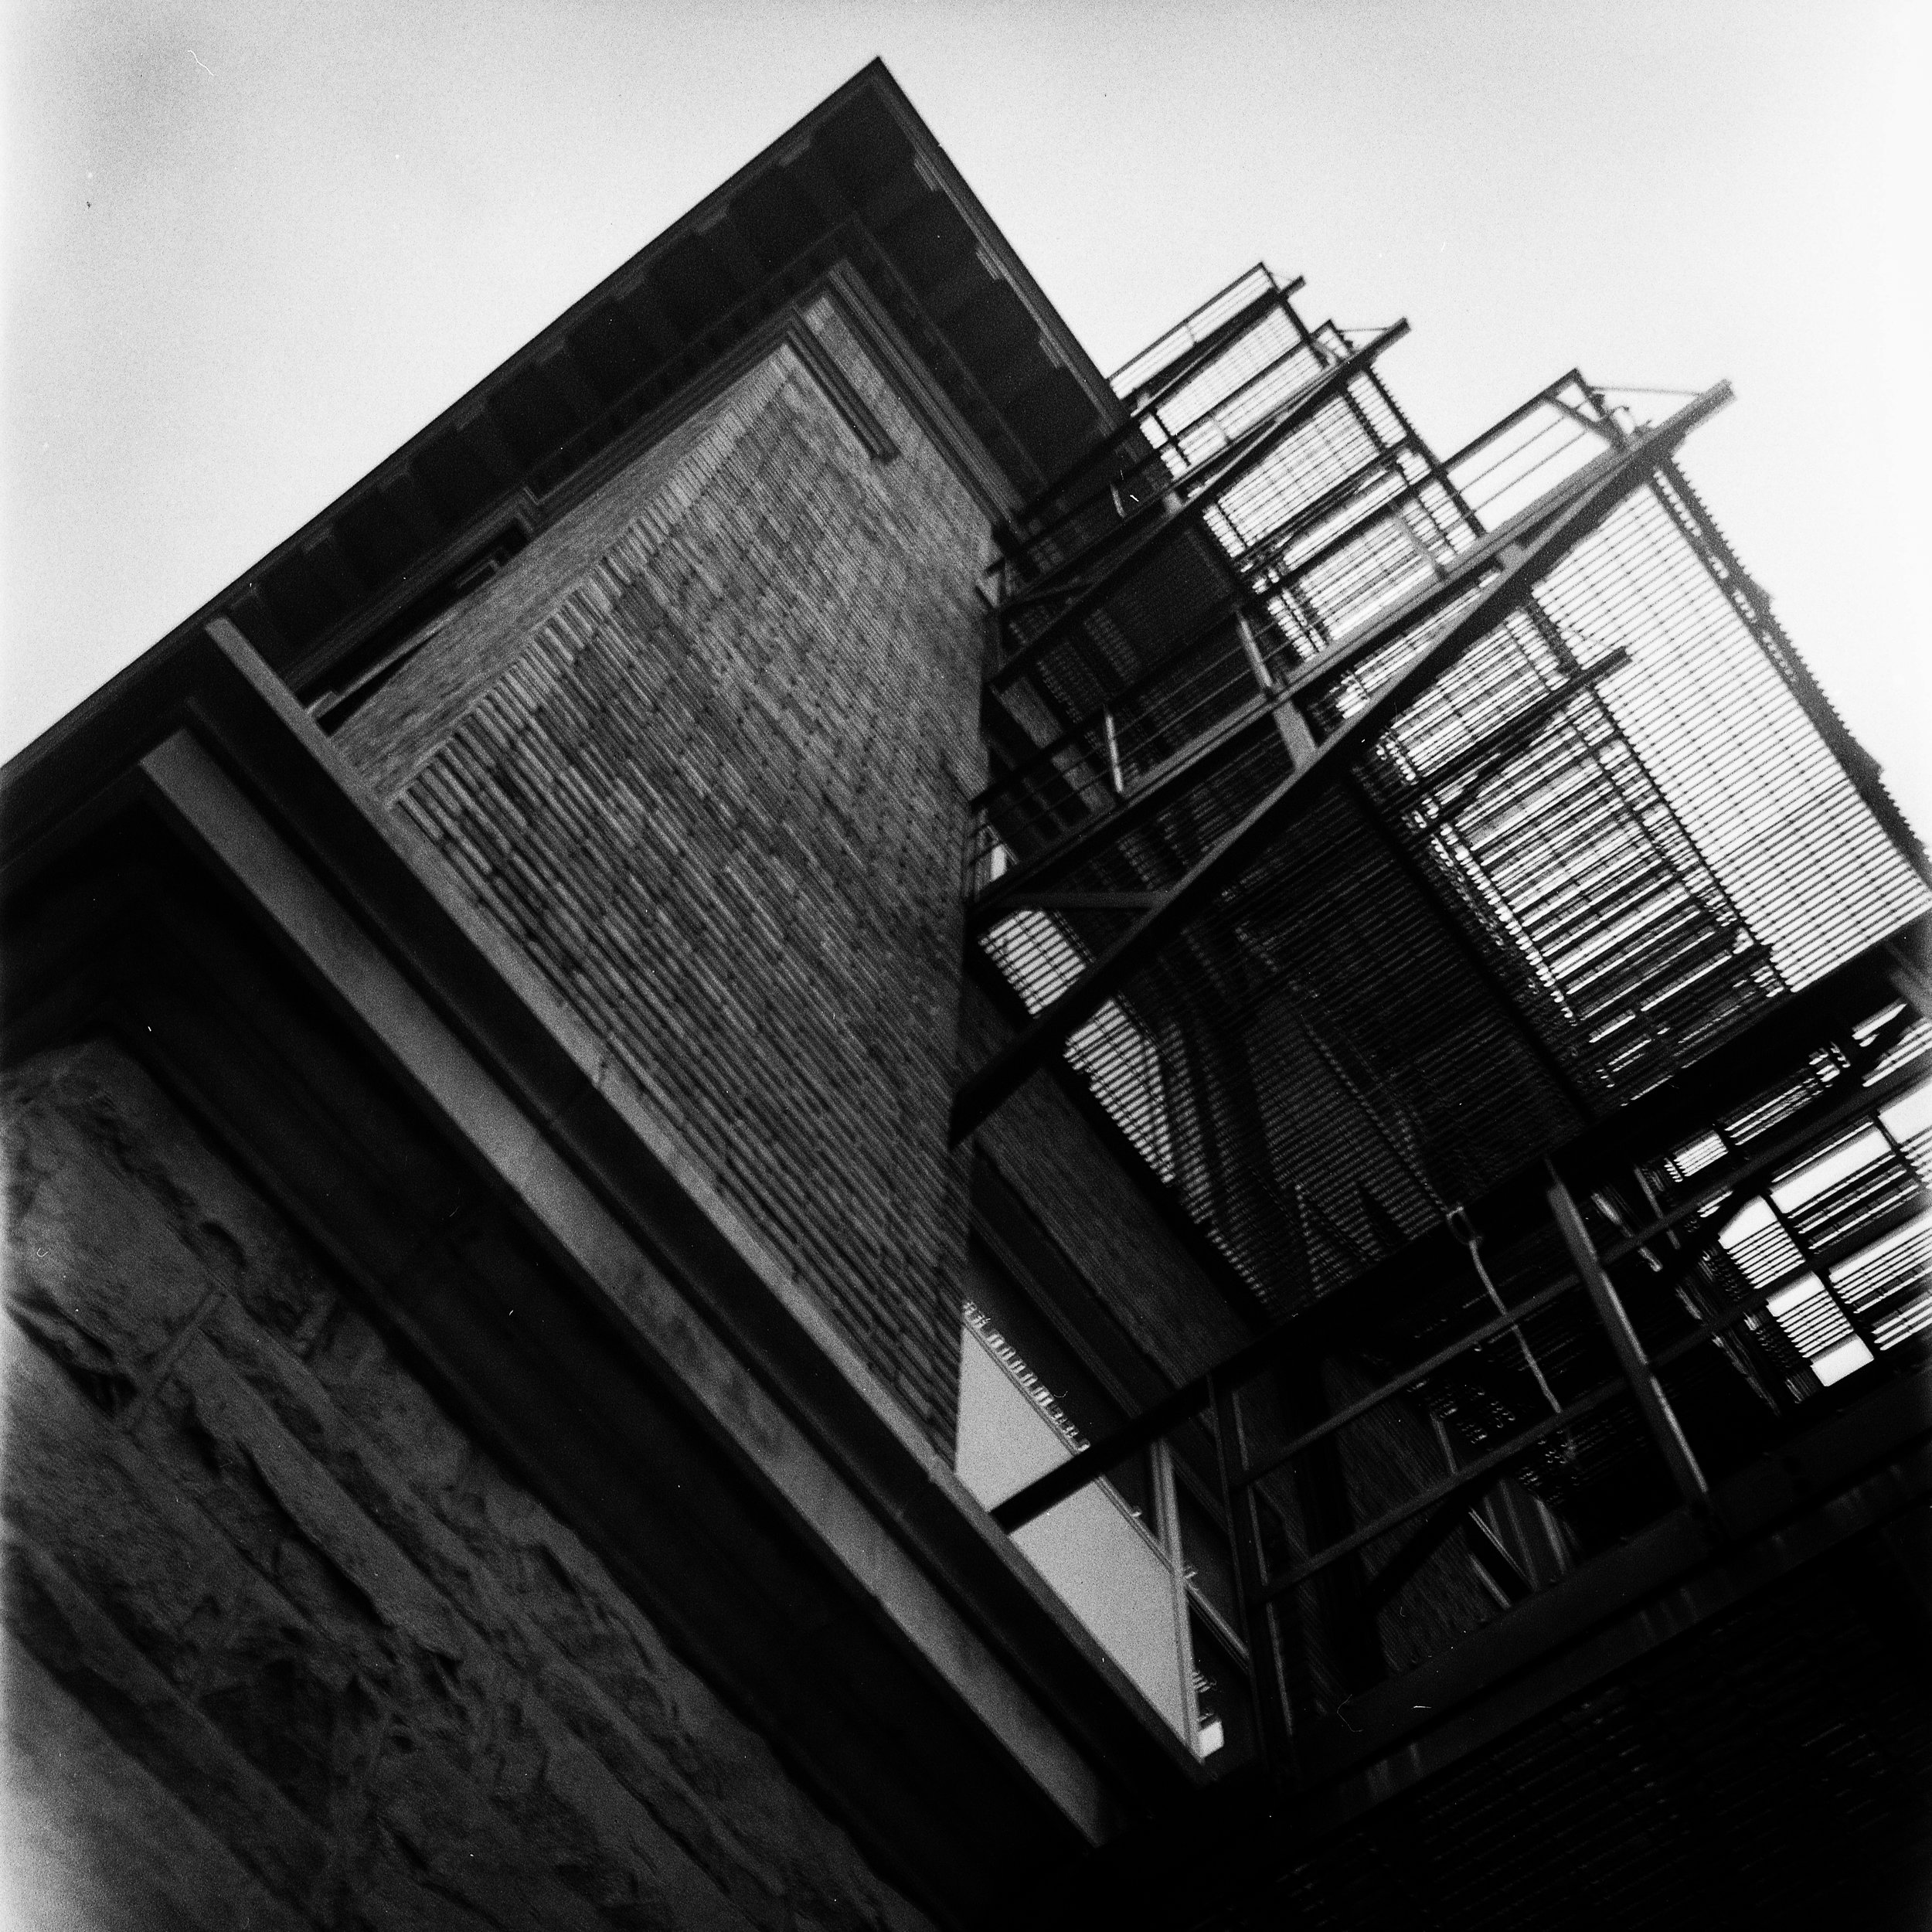 1949 Kodak Brownie Hawkeye Photo Medium Format 620 Film Zoe Kissel Photo MSU Campus East Lansing